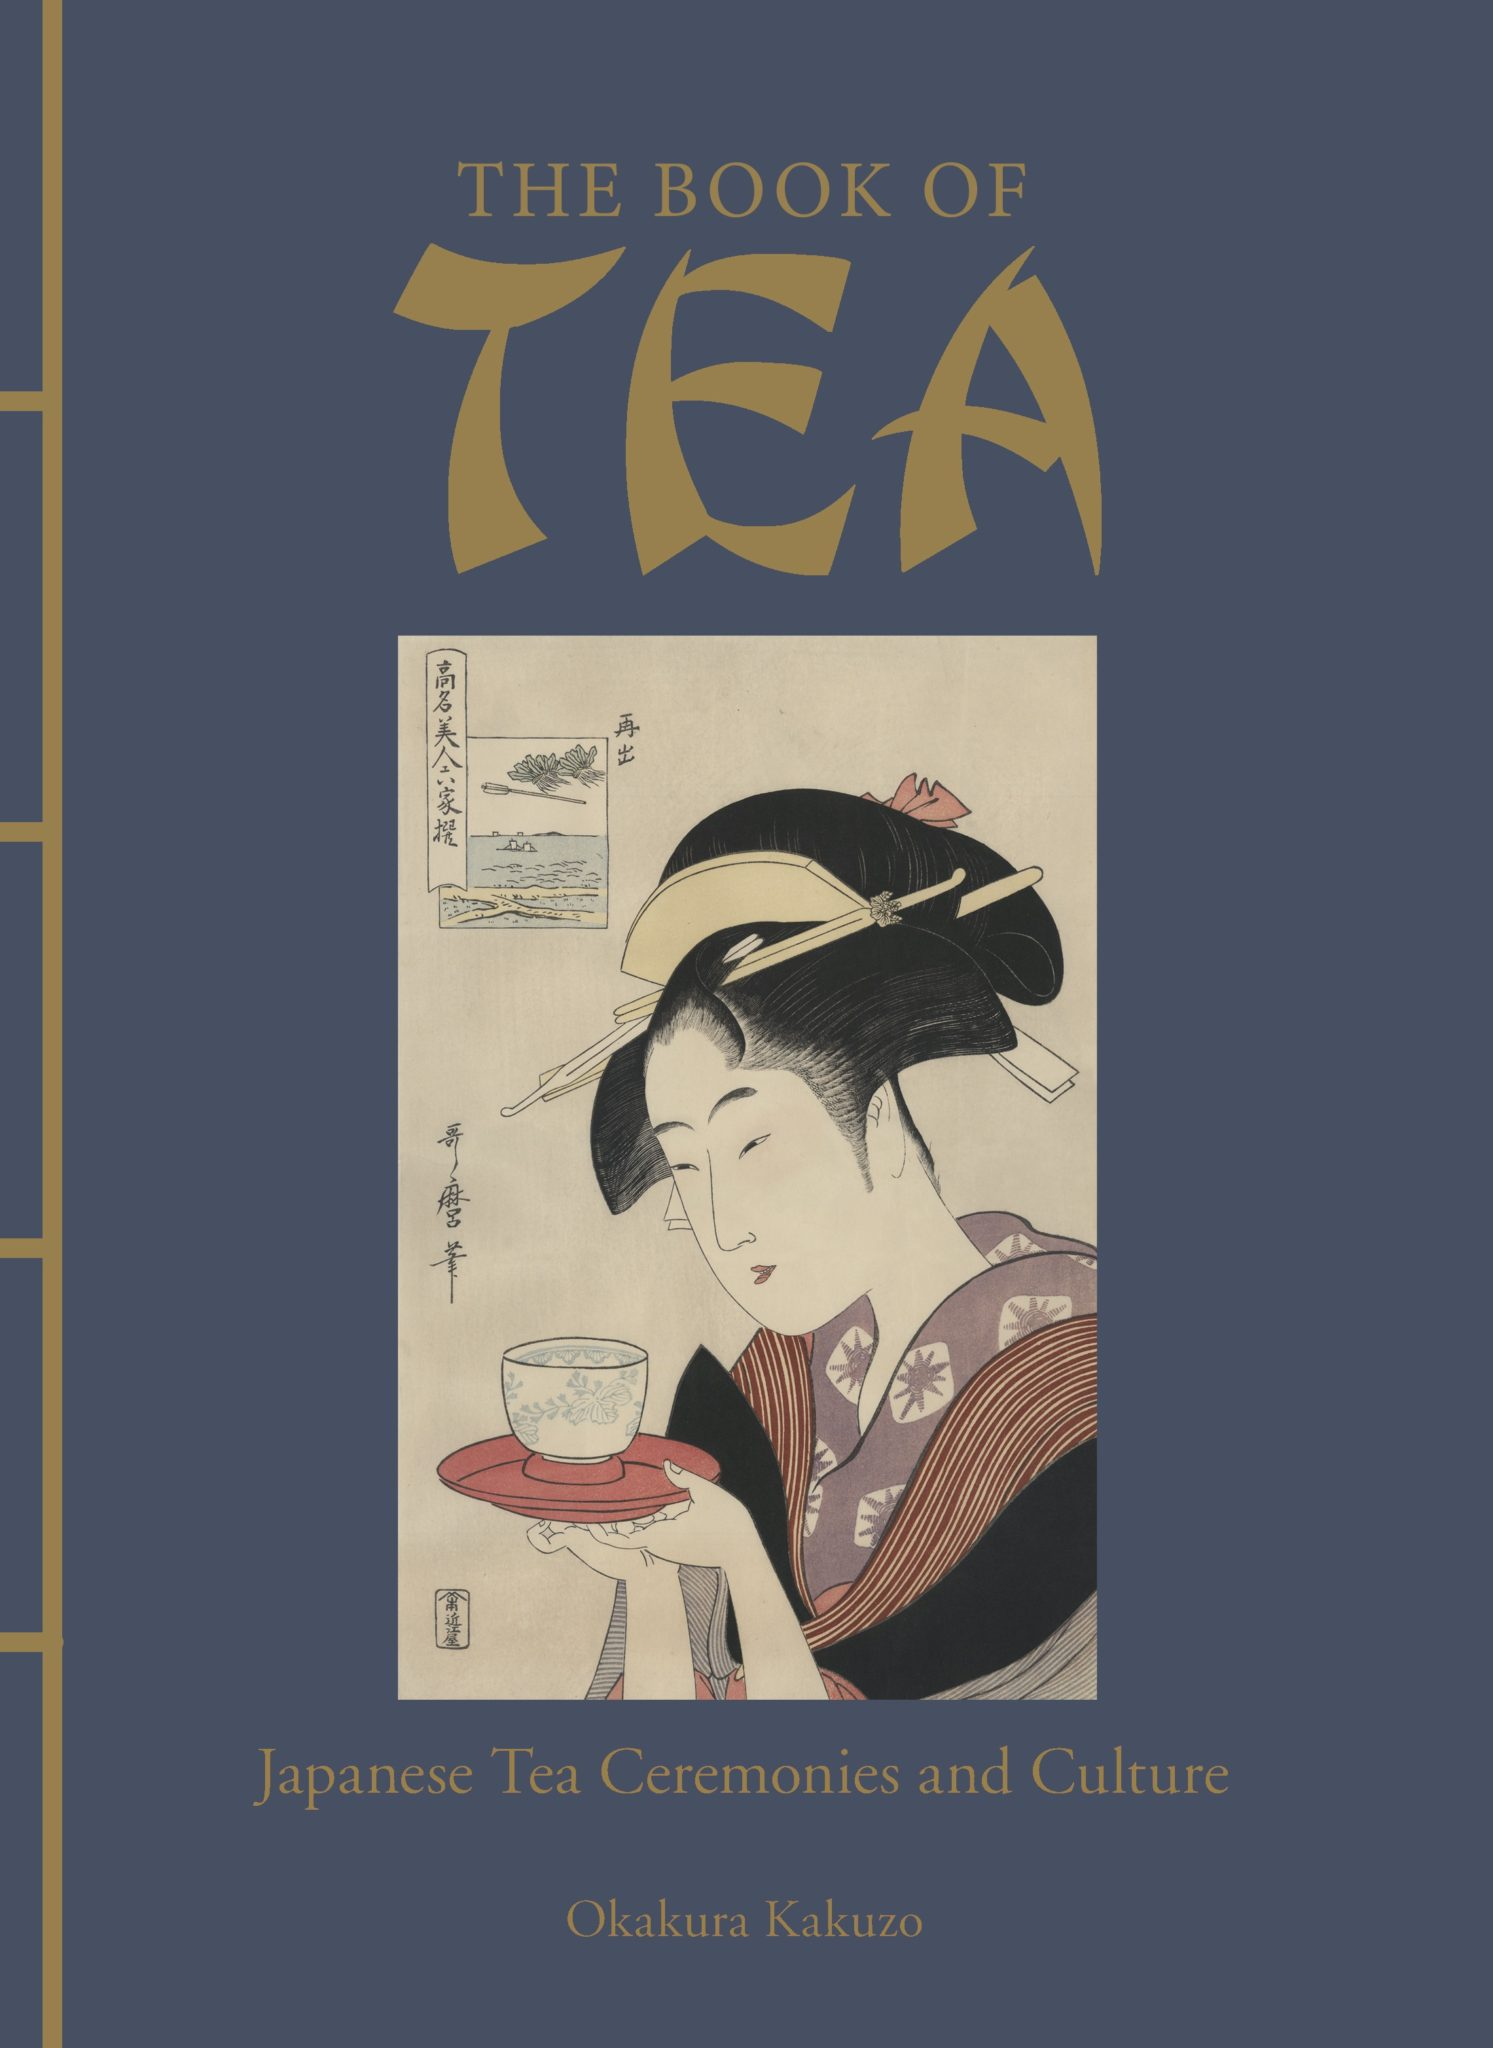 The book of tea cover